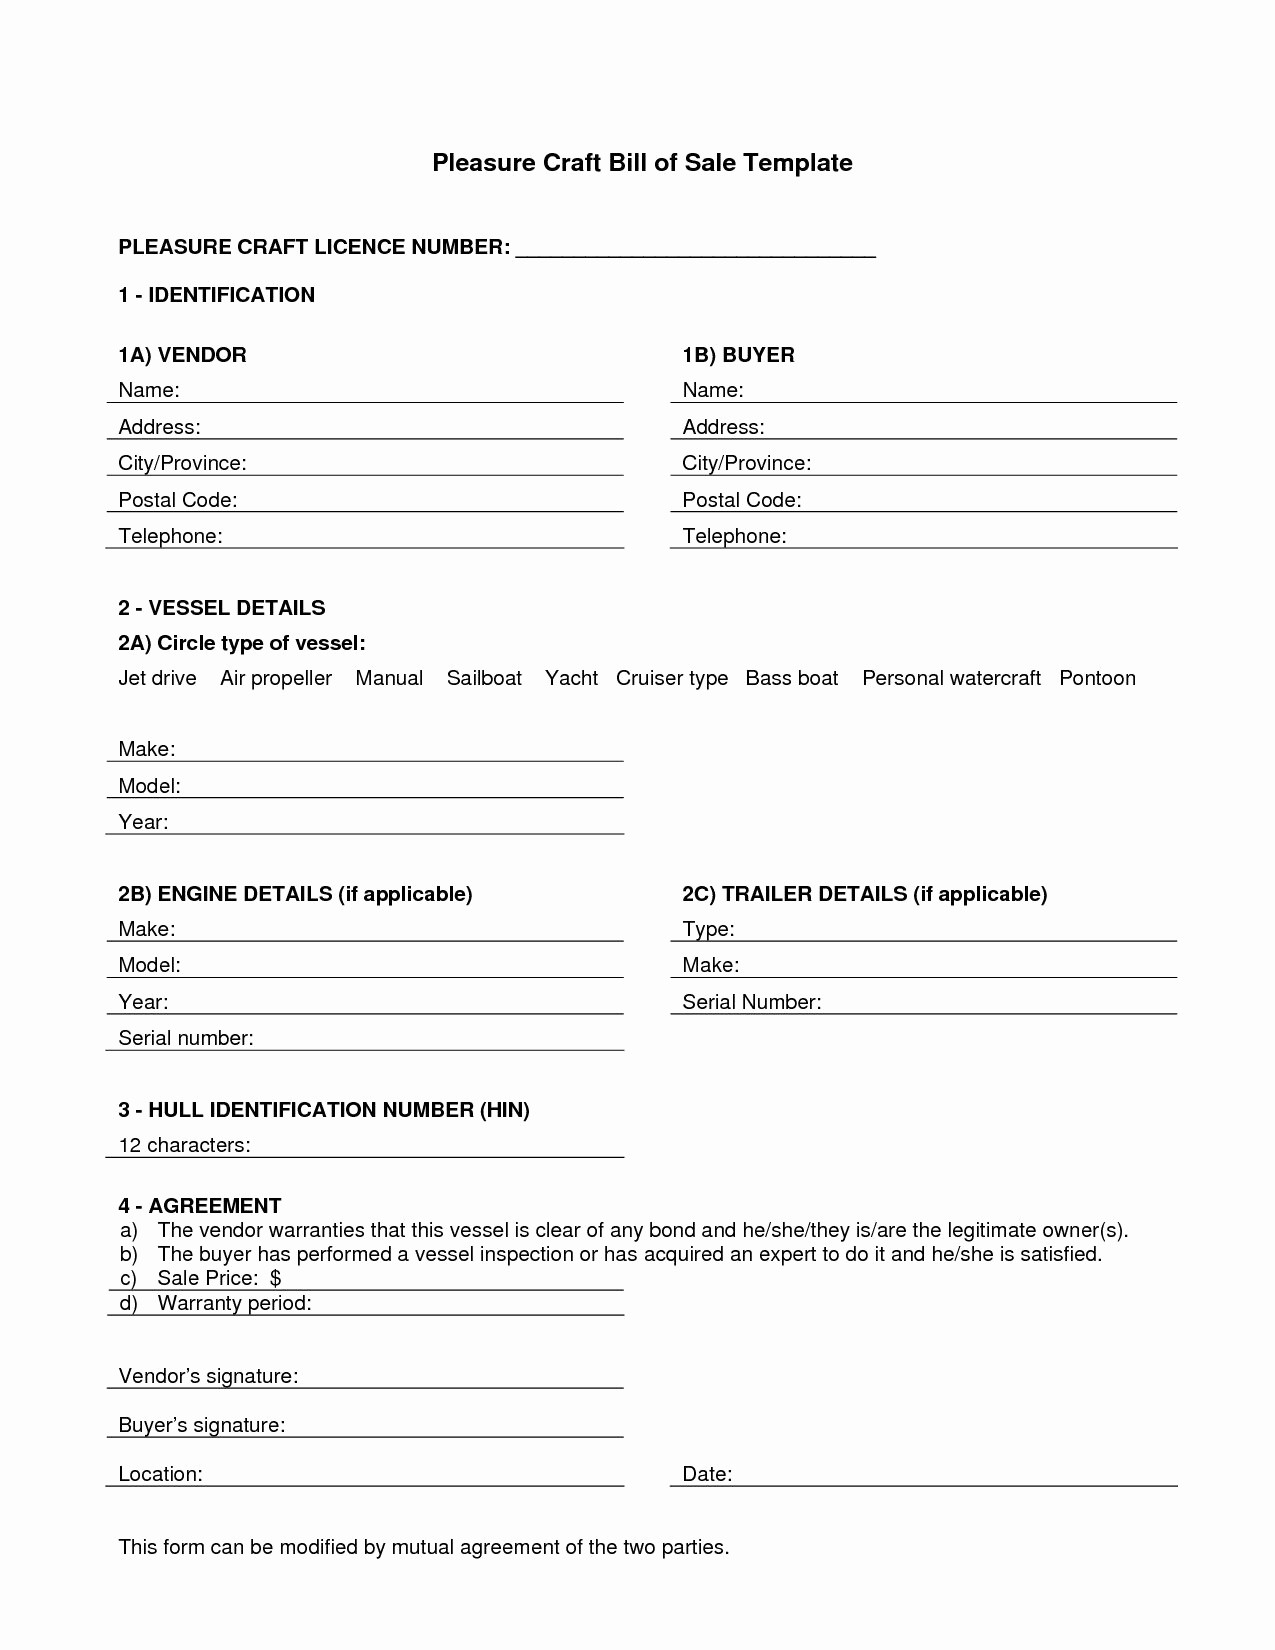 Illinois Auto Bill Of Sale Best Of Bill Sale Template Auto Sample Worksheets Car Word Uk